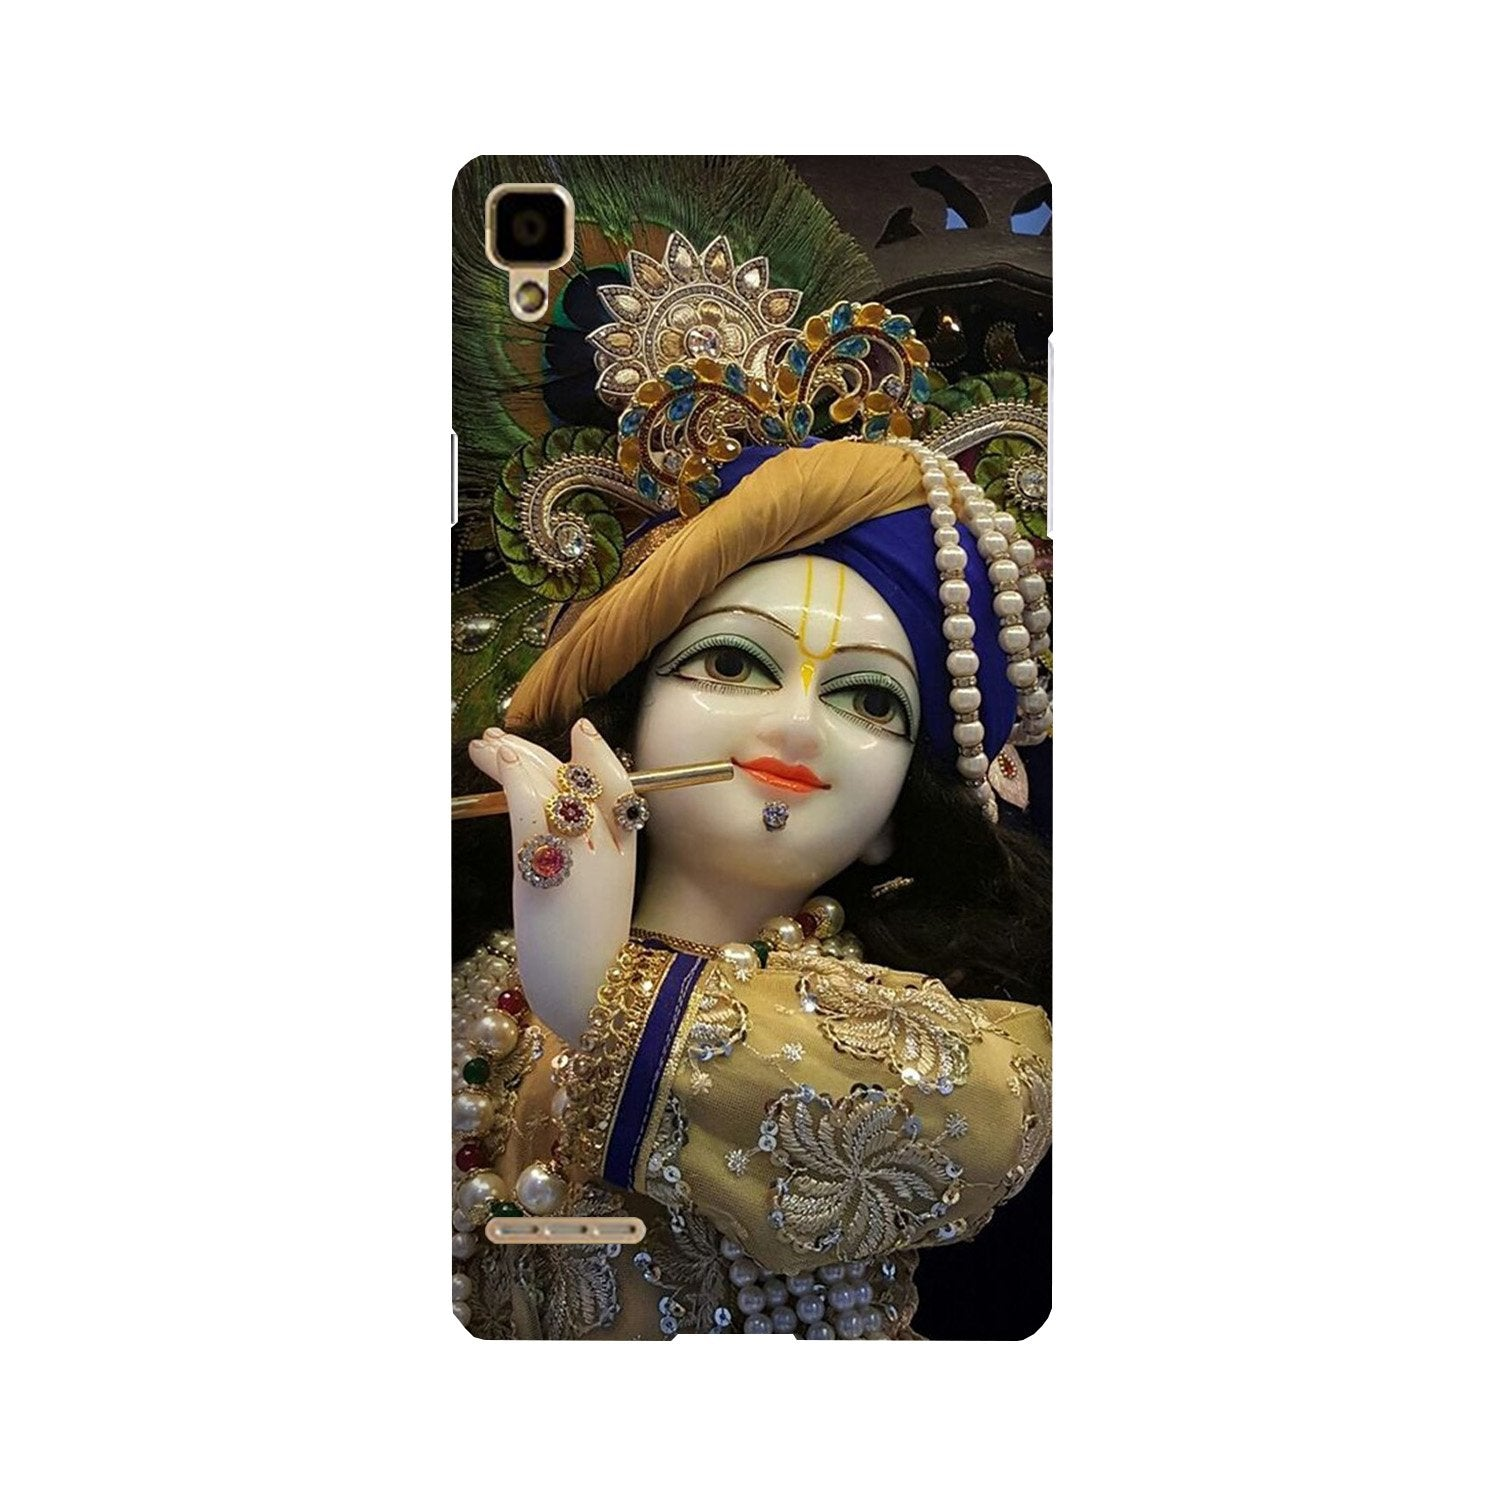 Lord Krishna3 Case for Oppo F1